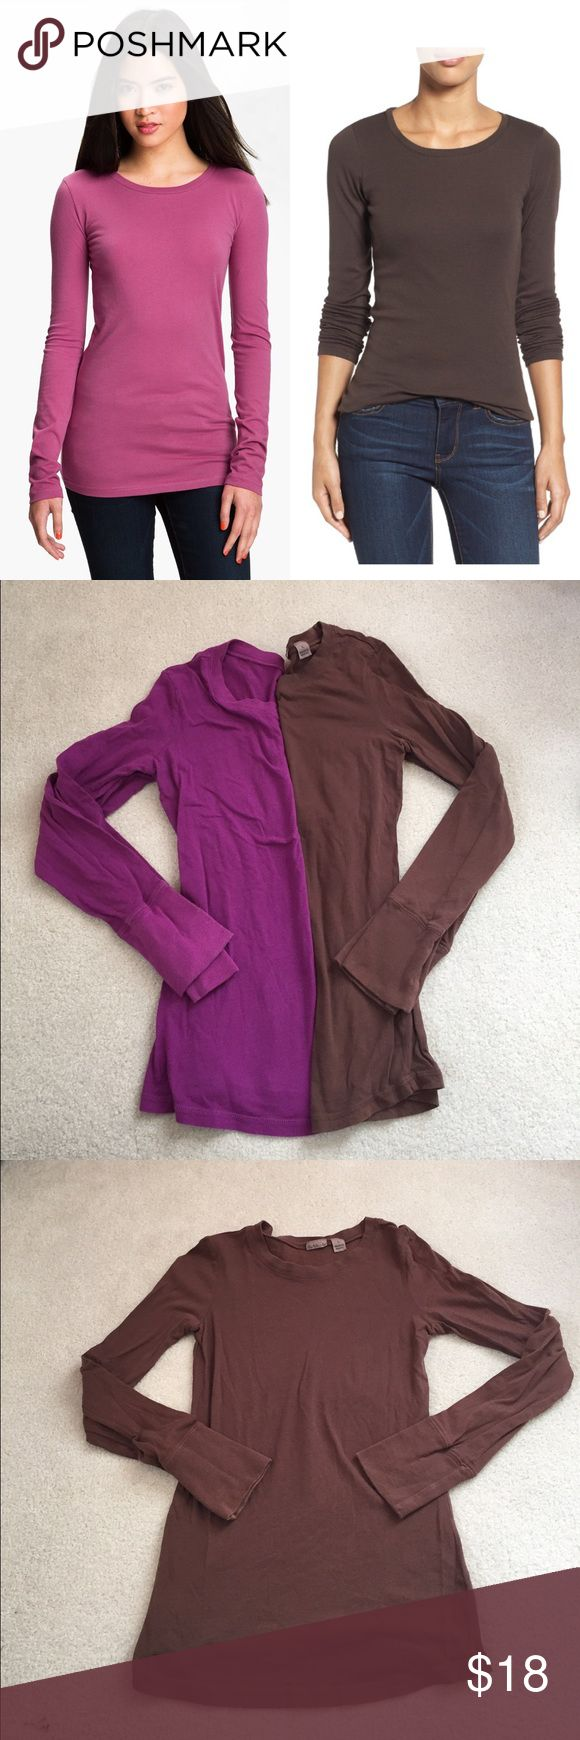 2 Bundled Rubbish Long Sleeve T-Shirts Brown and purple long sleeve t-shirts. Great condition! Super soft and excellent layering pieces ! Tops Tees - Long Sleeve